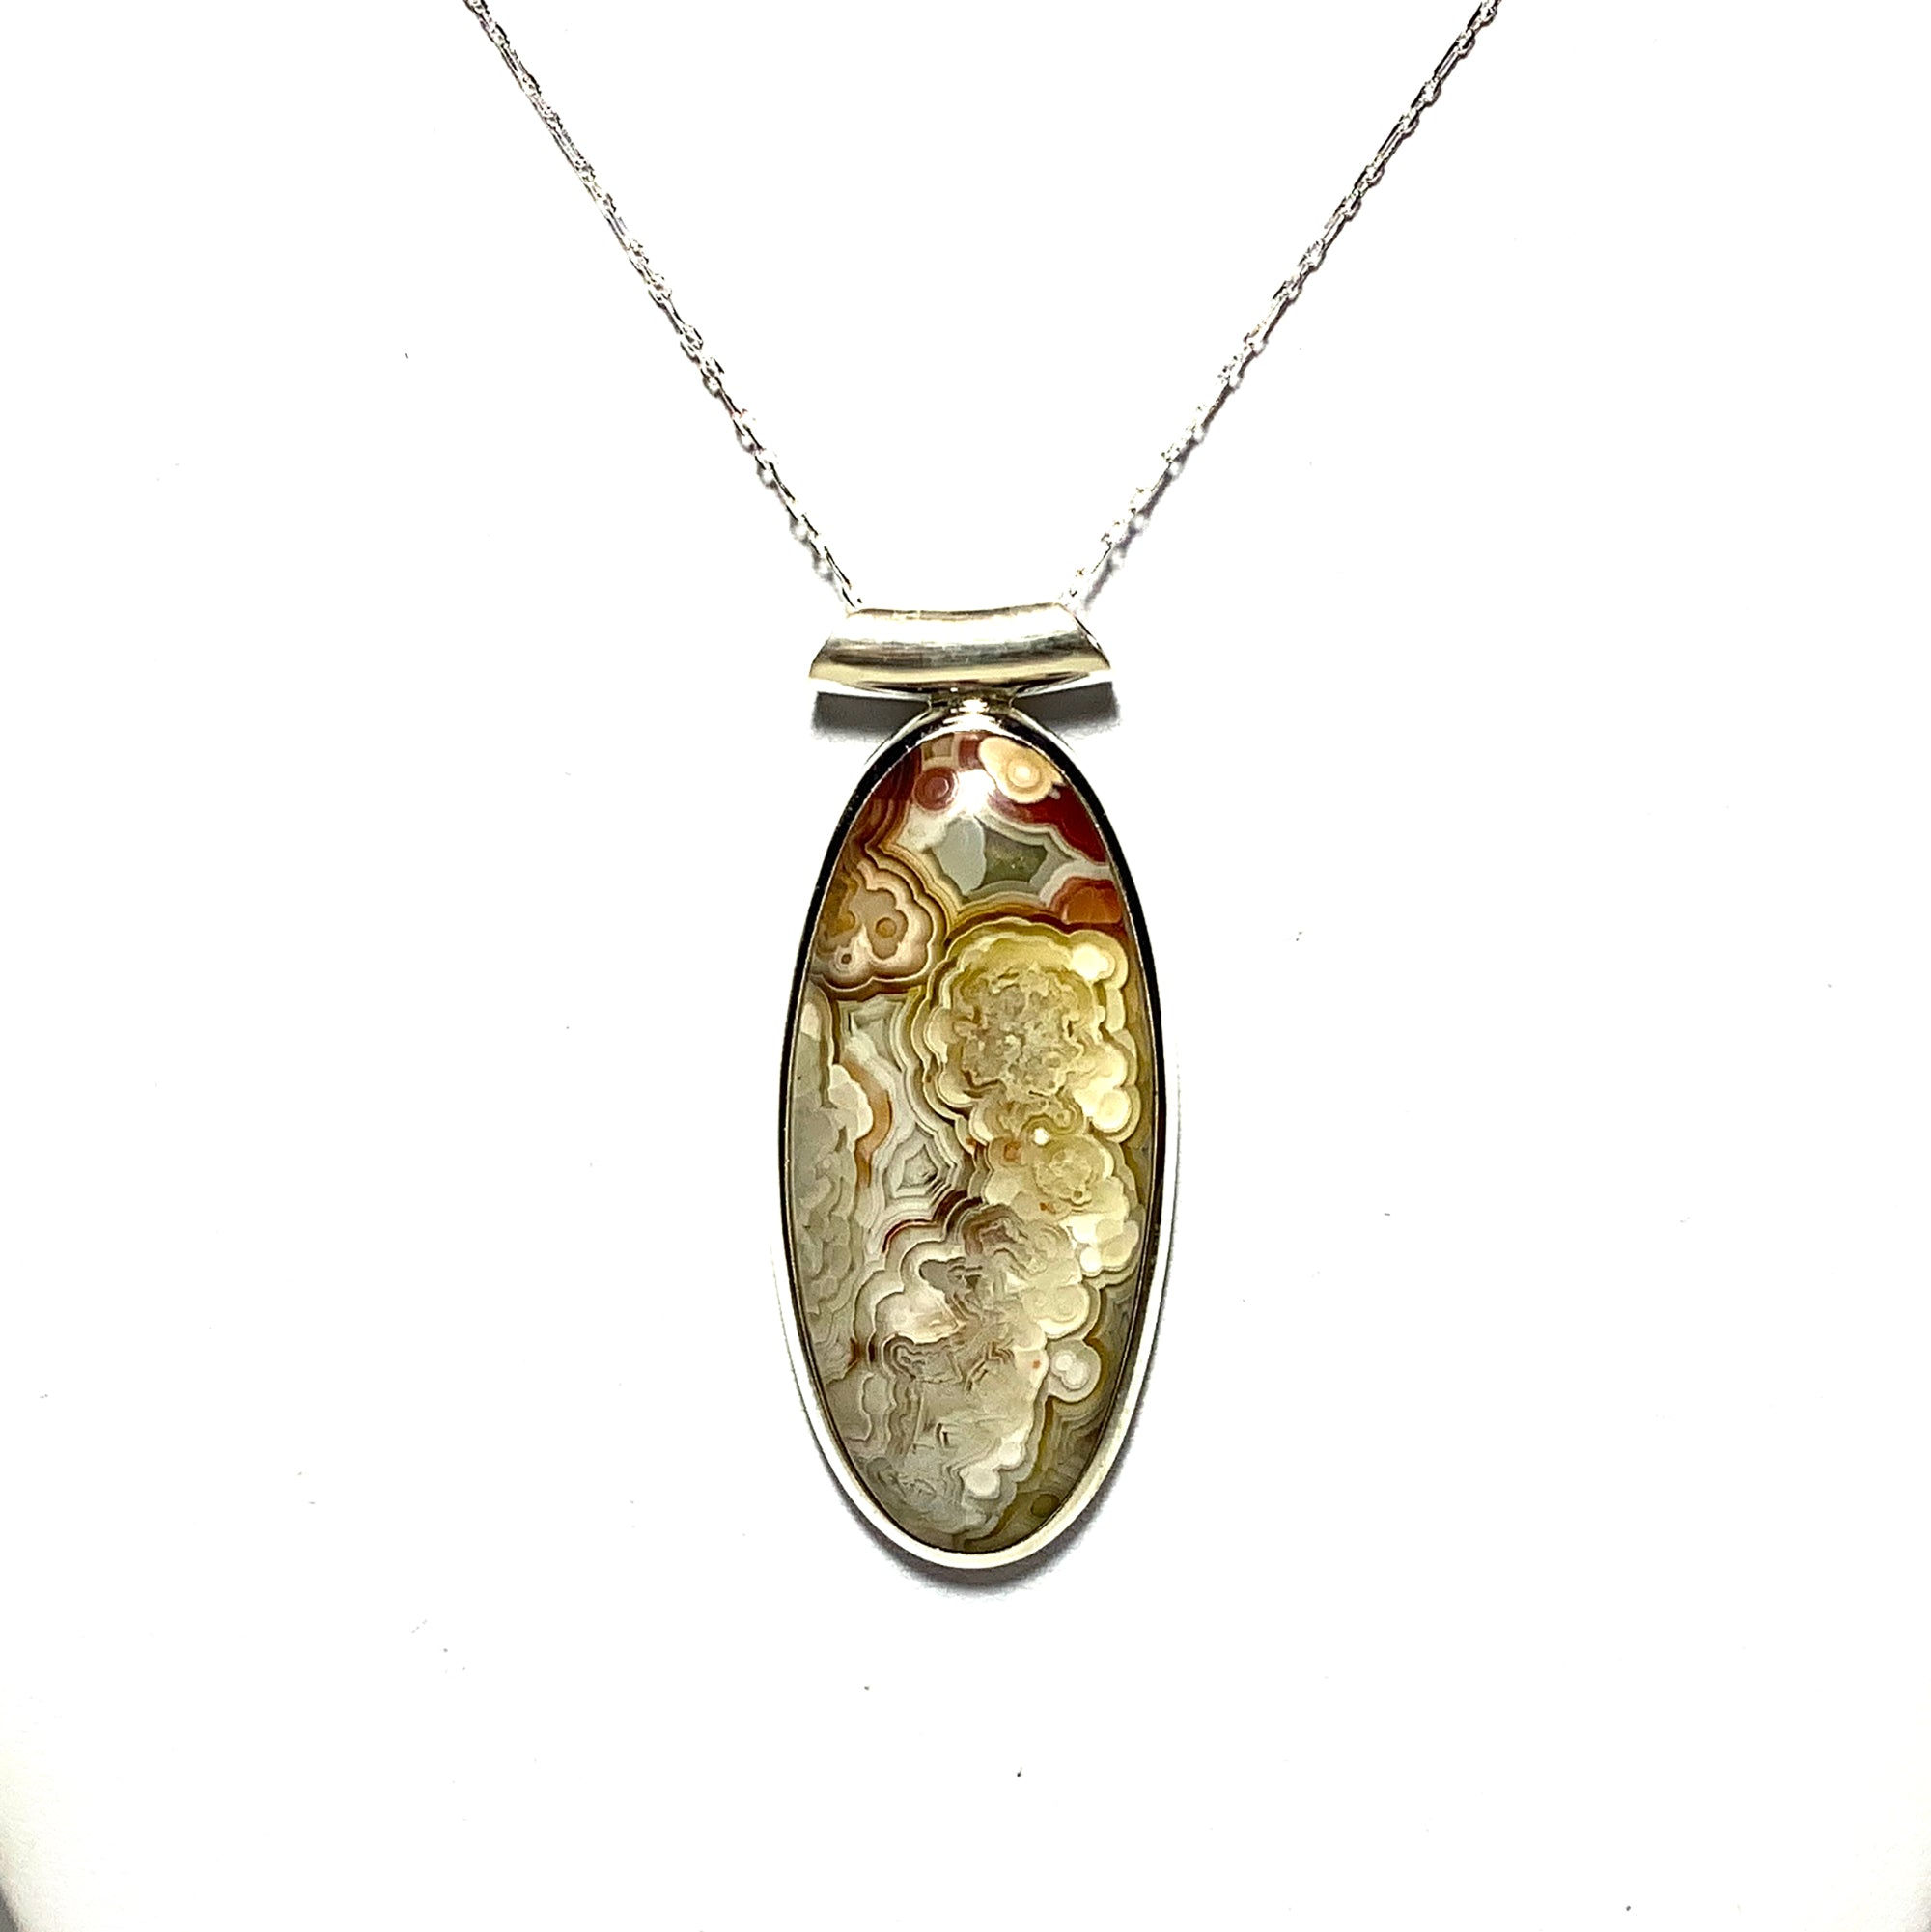 Crazy Lace Agate Pendant 1 12 925 Sterling Silver PD689110